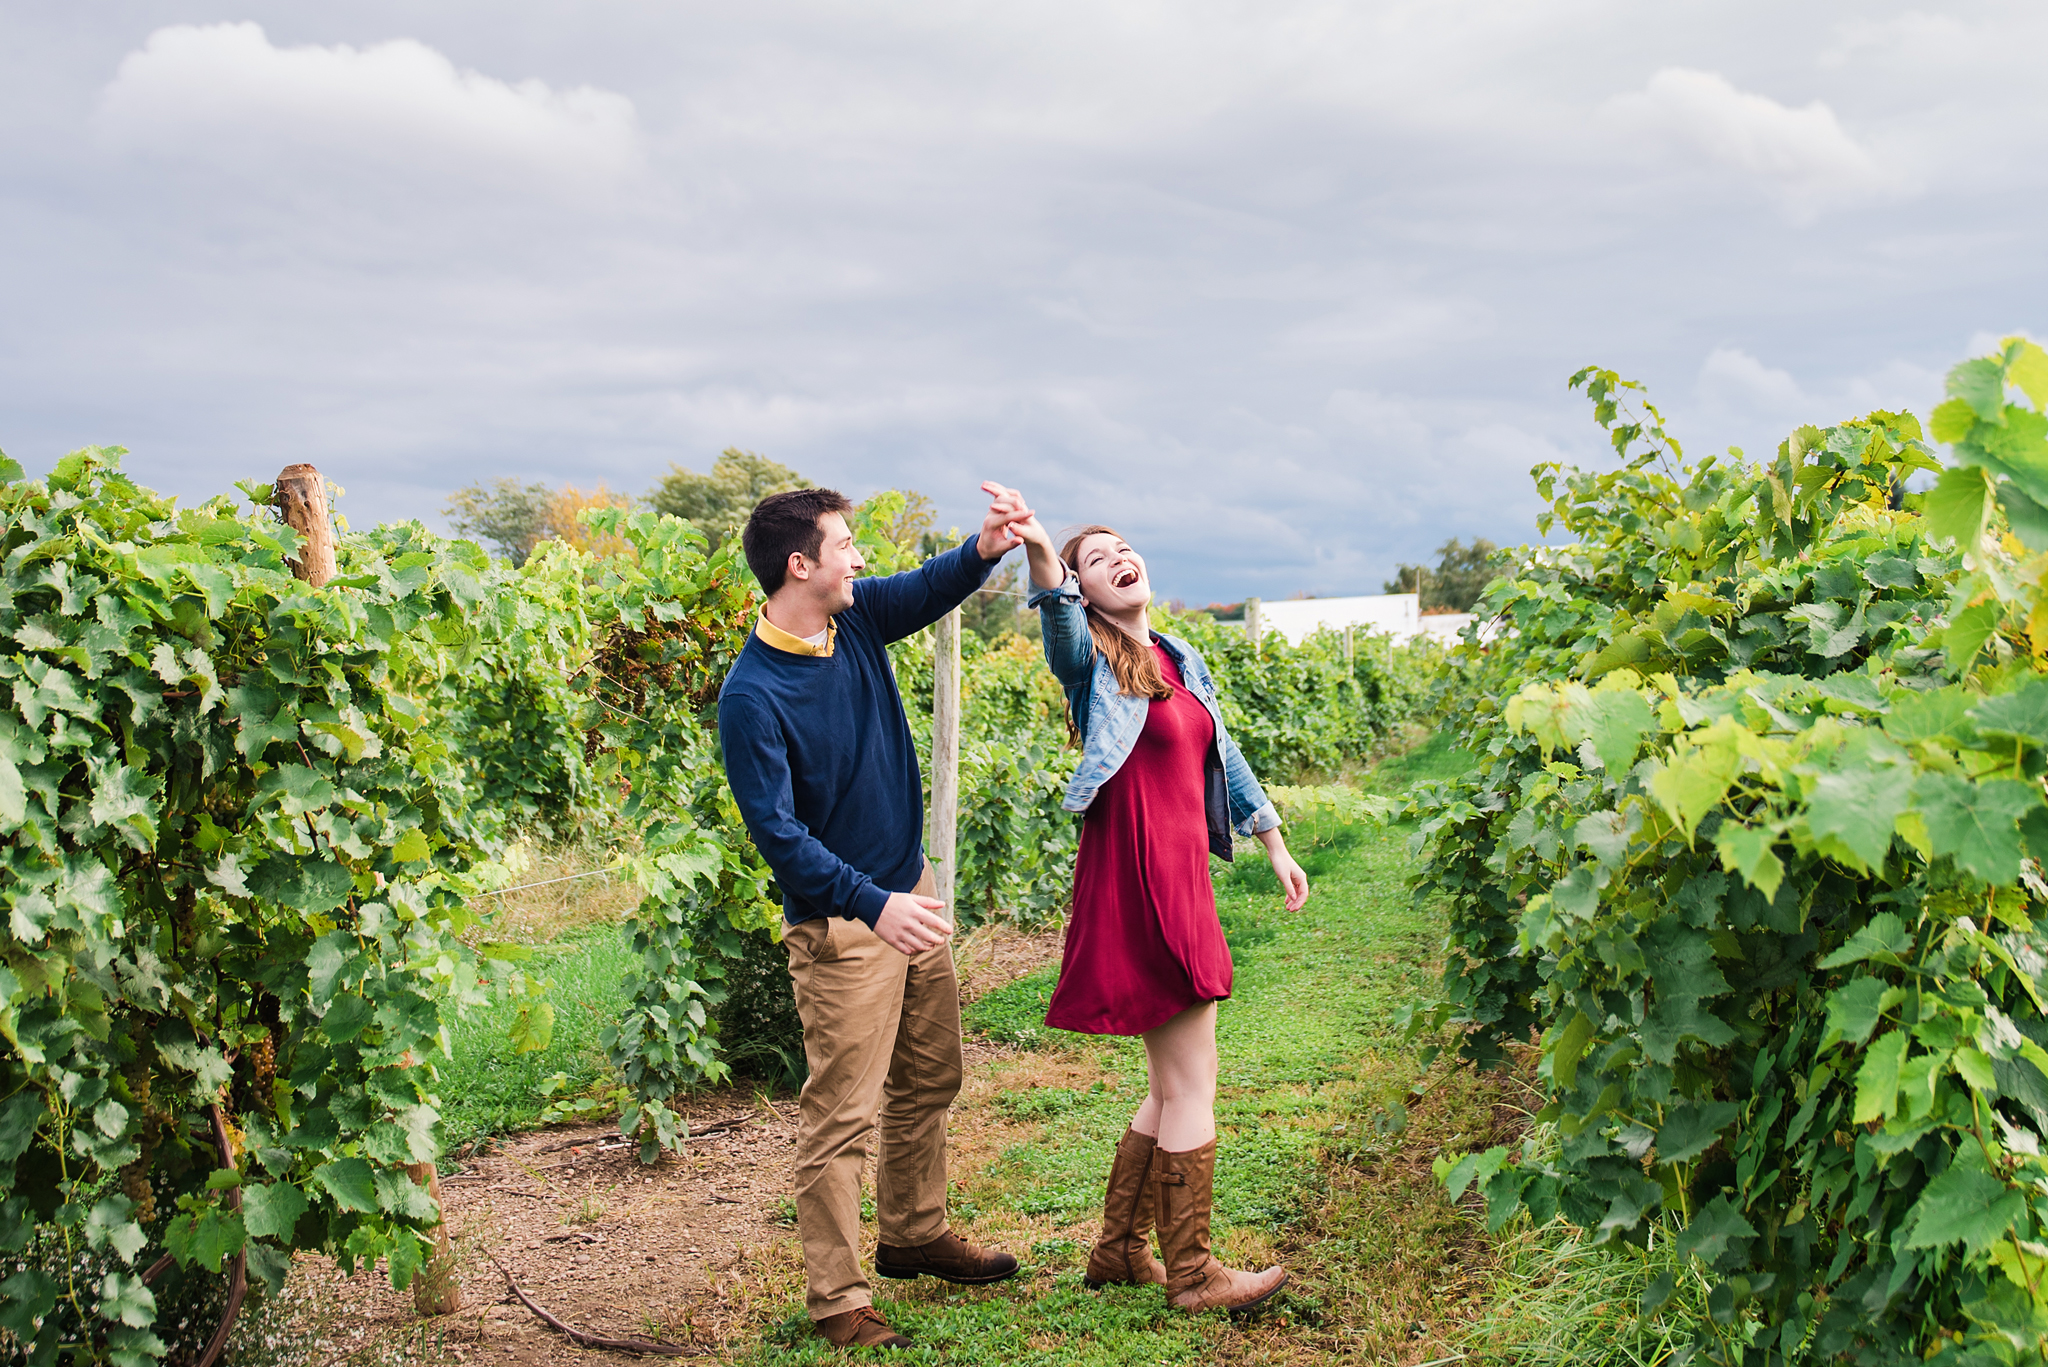 Becker_Farms_Buffalo_Engagement_Session_JILL_STUDIO_Rochester_NY_Photographer_DSC_4687.jpg